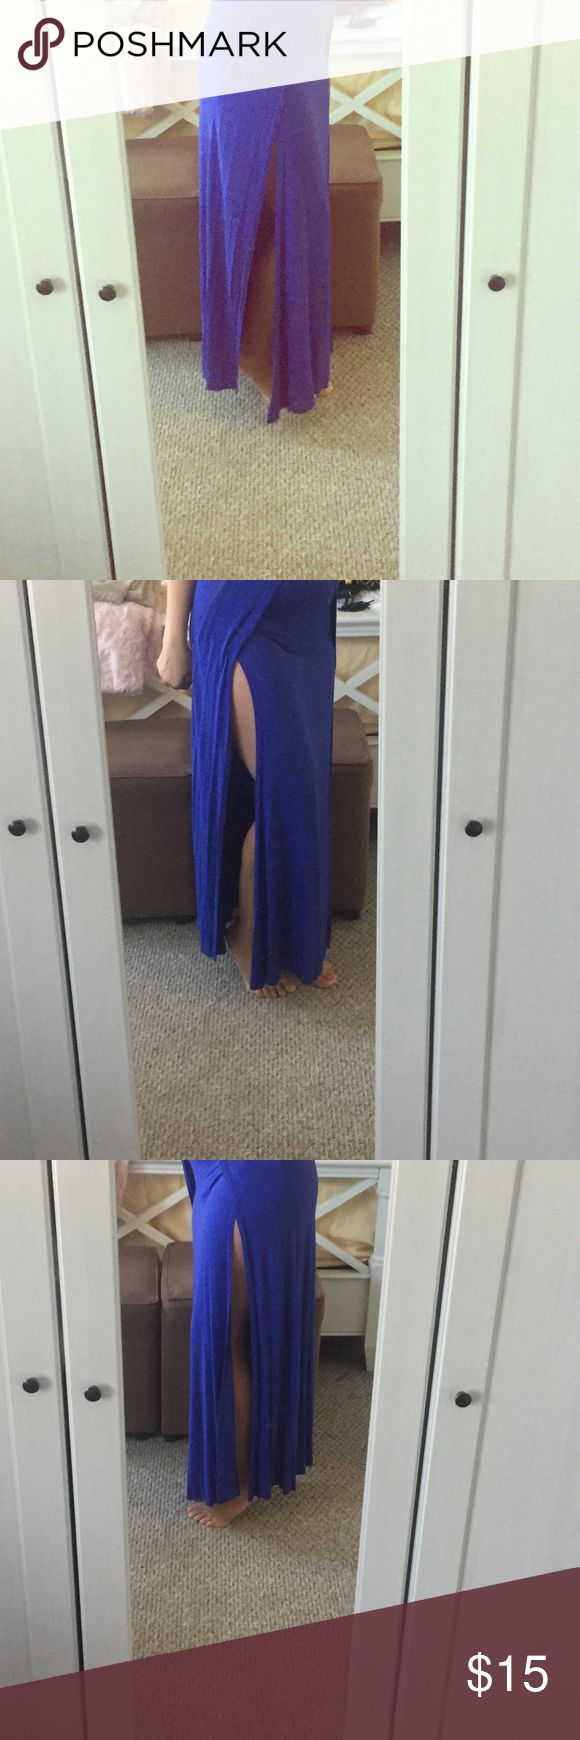 NWOT royal blue maxi skirt with two slits! Brand new, never worn royal blue maxi skirts with two slits in it! Perfect for a night out, unfortunately it does not fit me. Go Jane Skirts Maxi